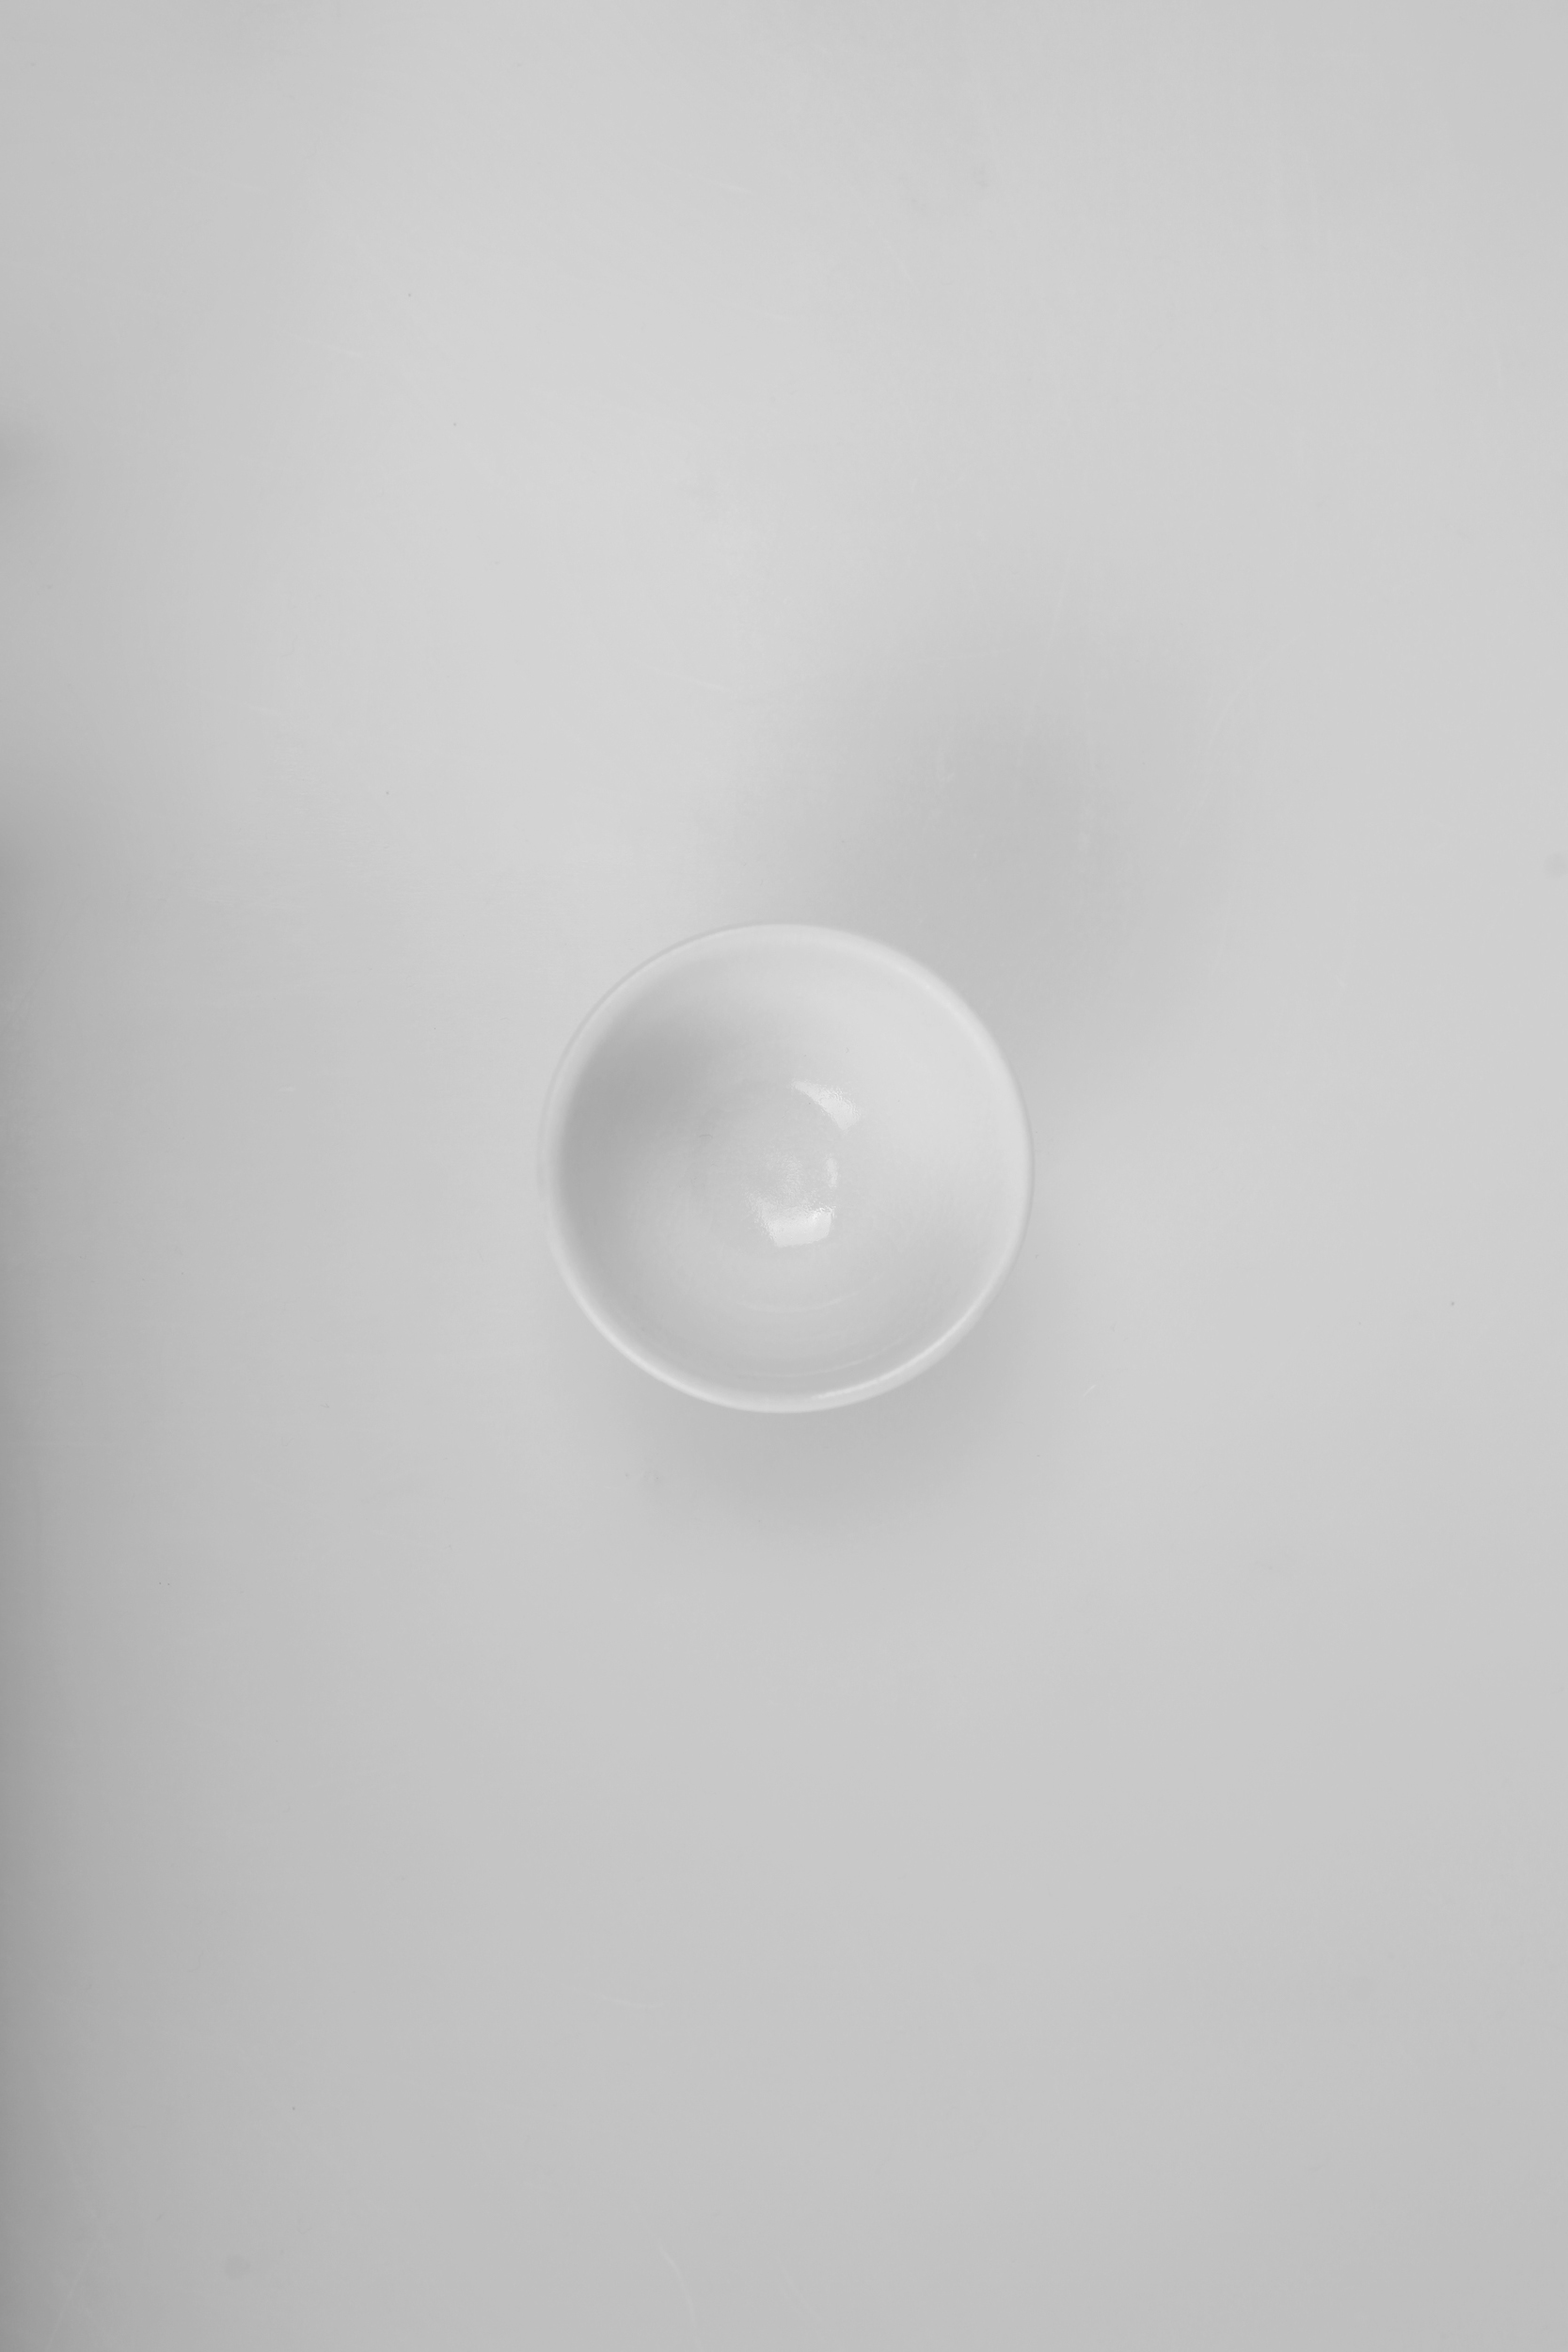 White tea cup / porcelain / unknown